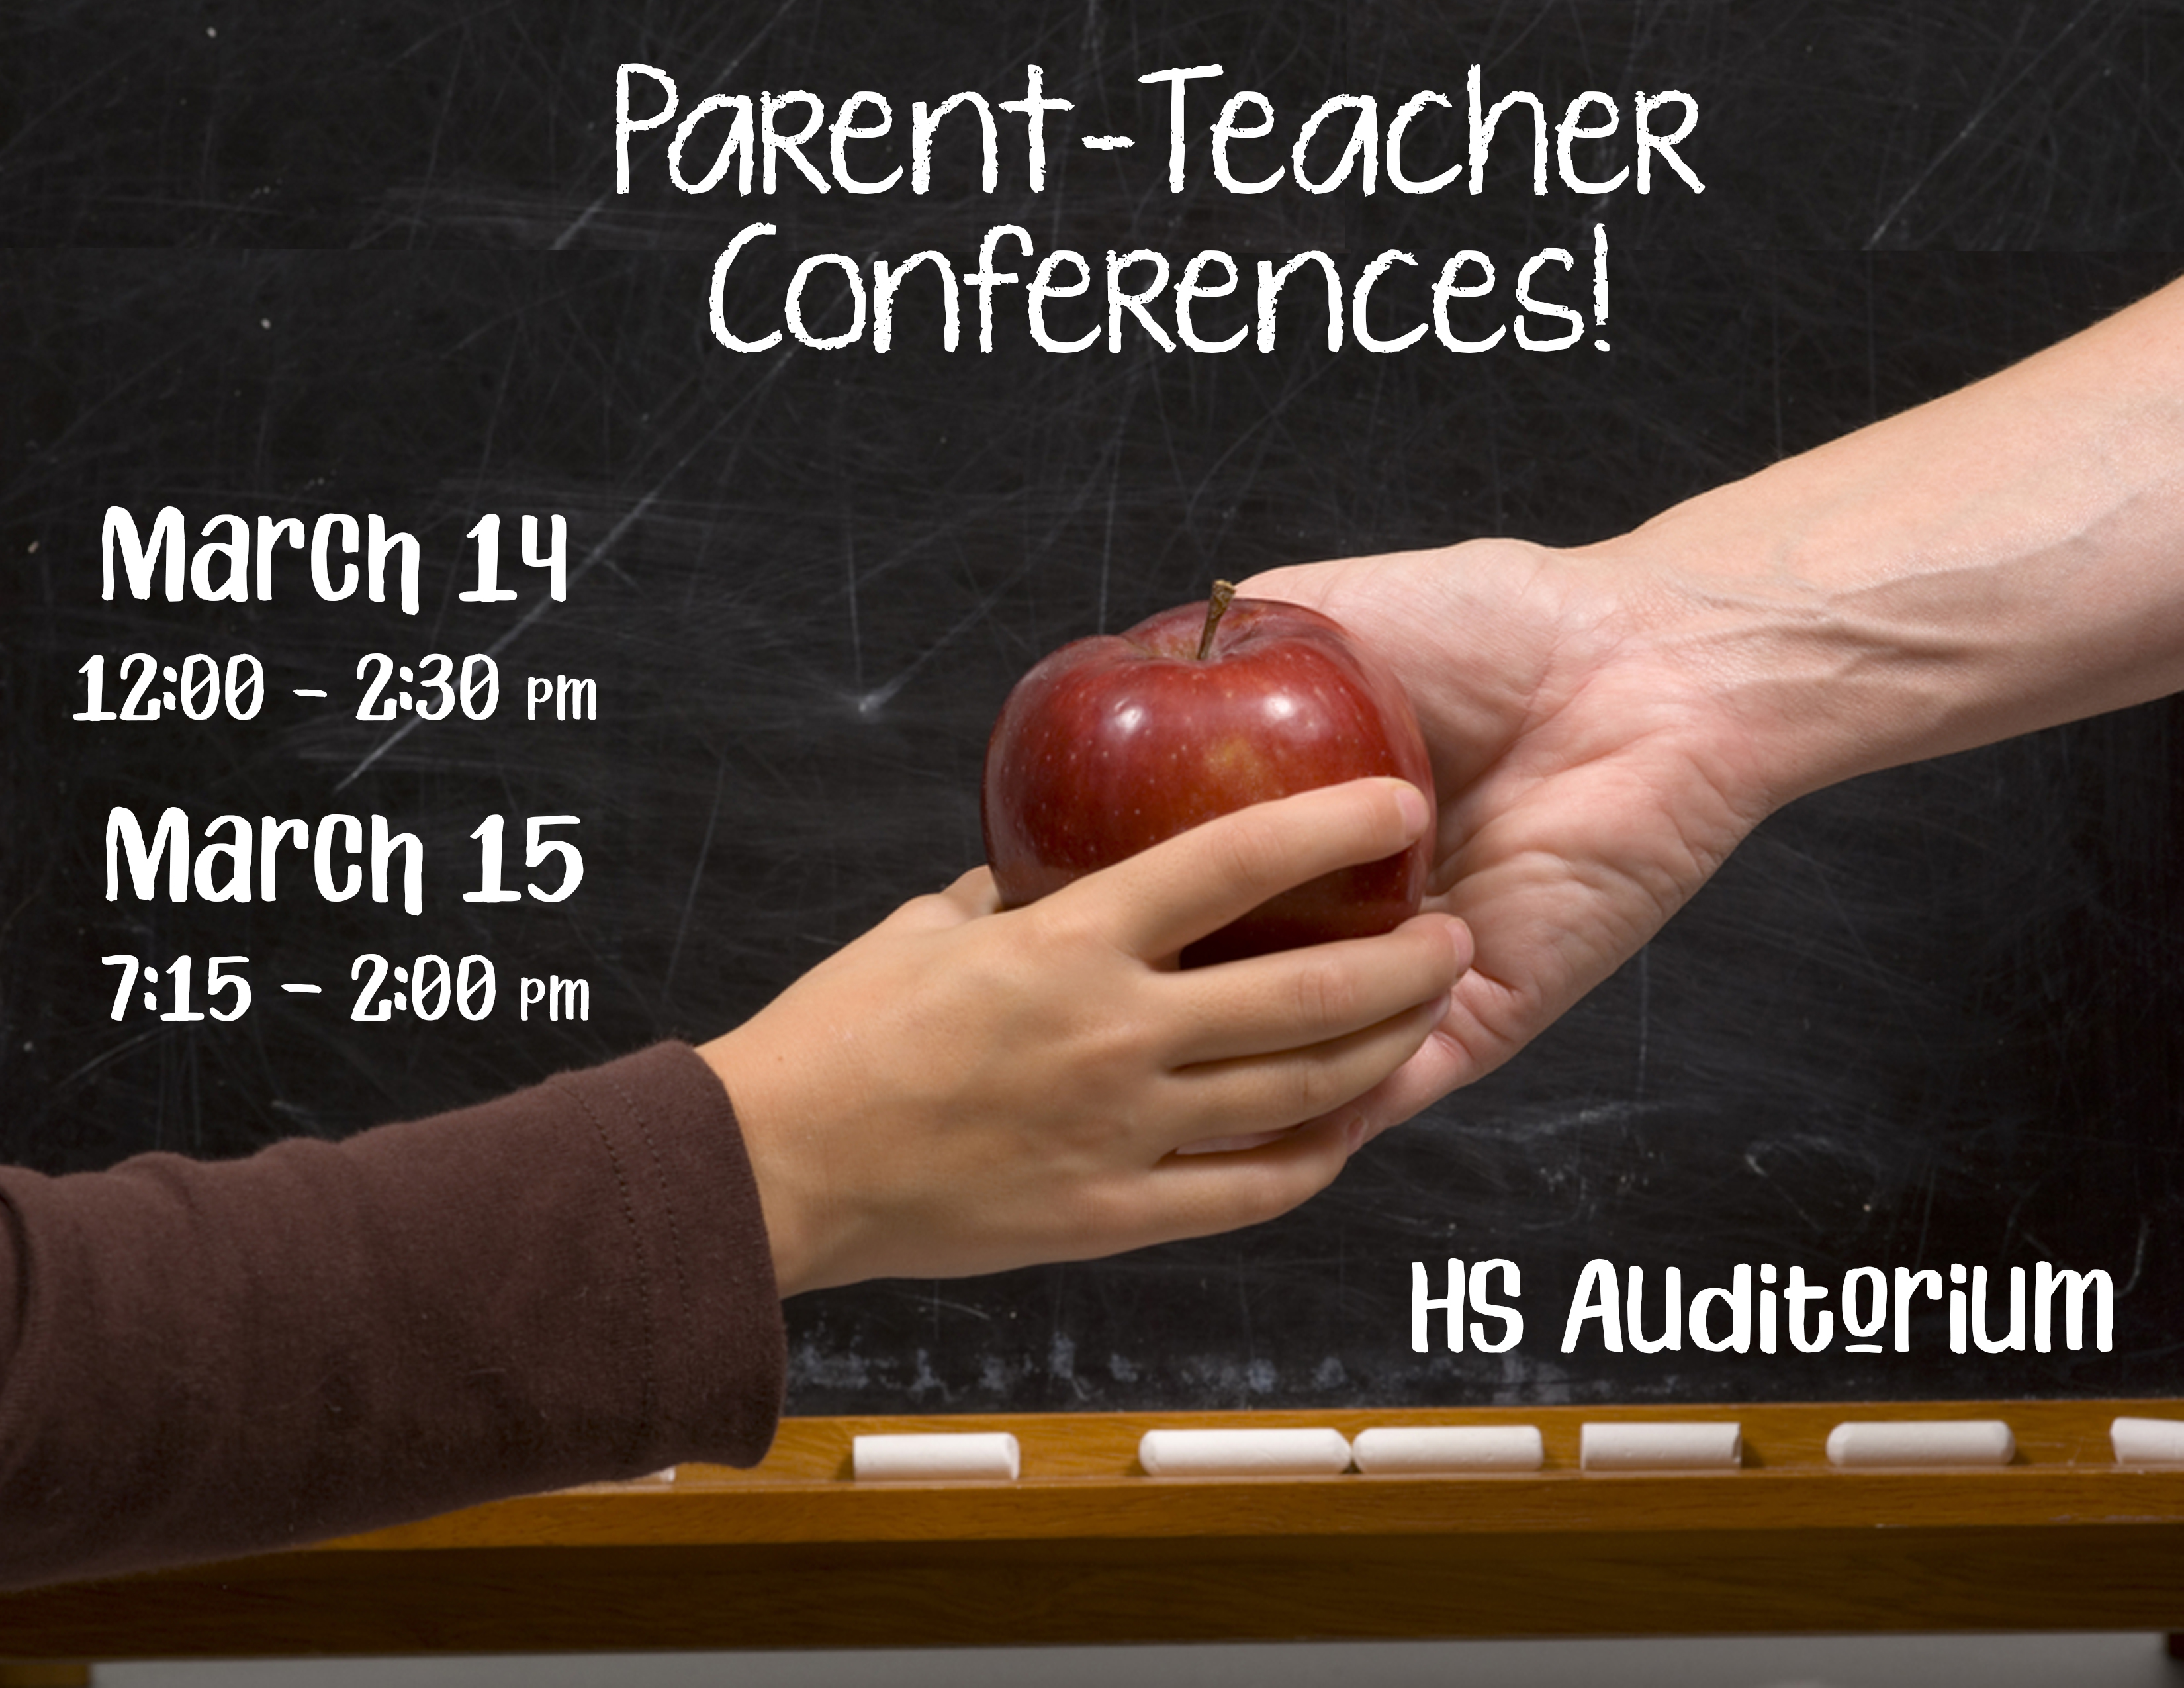 Parentteacher conferences march 14 15 ask high school office blog we invite all high school parents and students to attend the parent teacher conferences which will take place on march 14th 1200 230pm and march 15th altavistaventures Gallery